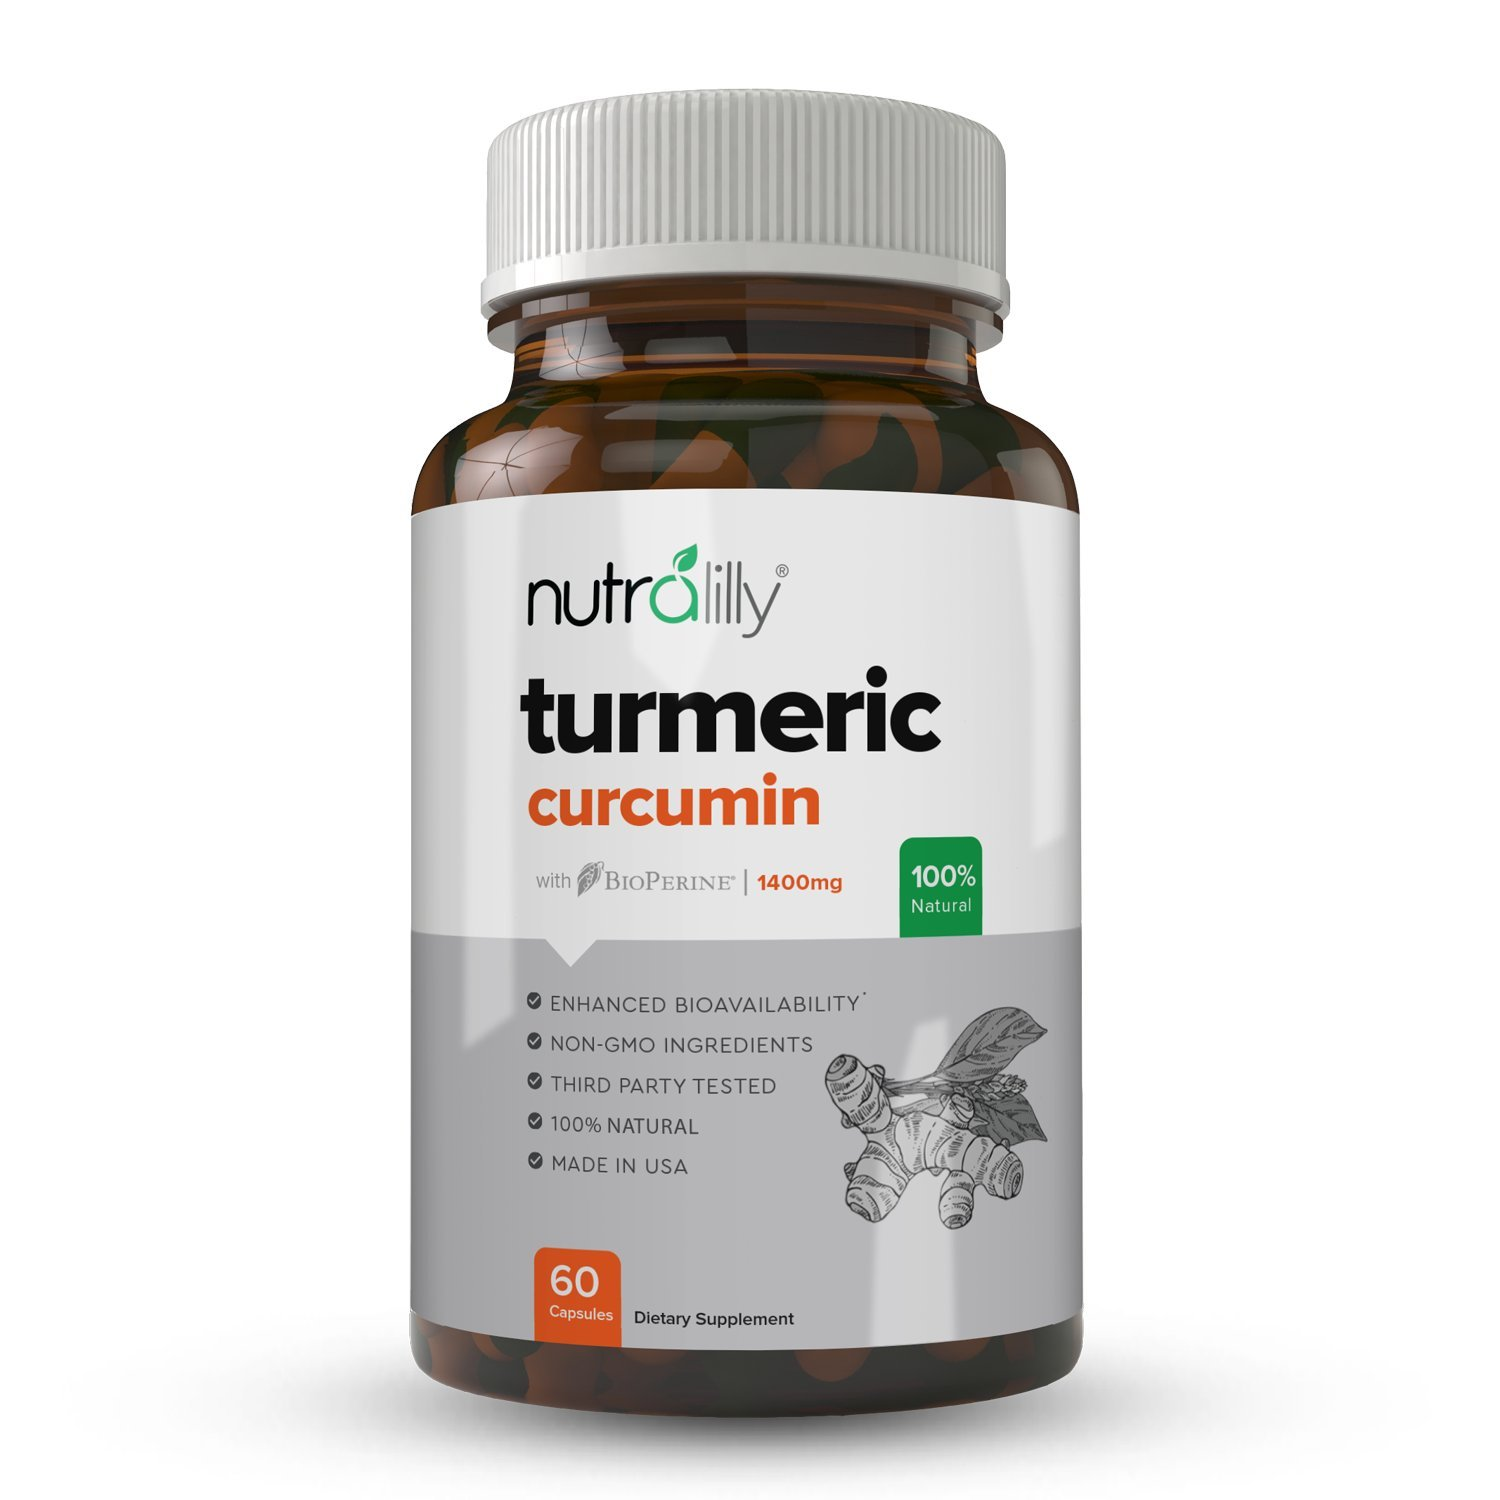 Organic Turmeric Curcumin with BioPerine Black Pepper Extract. 1420mg Turmeric Curcumin Supplement for Pain Relief & Joint Support with 95% Curcuminoids.